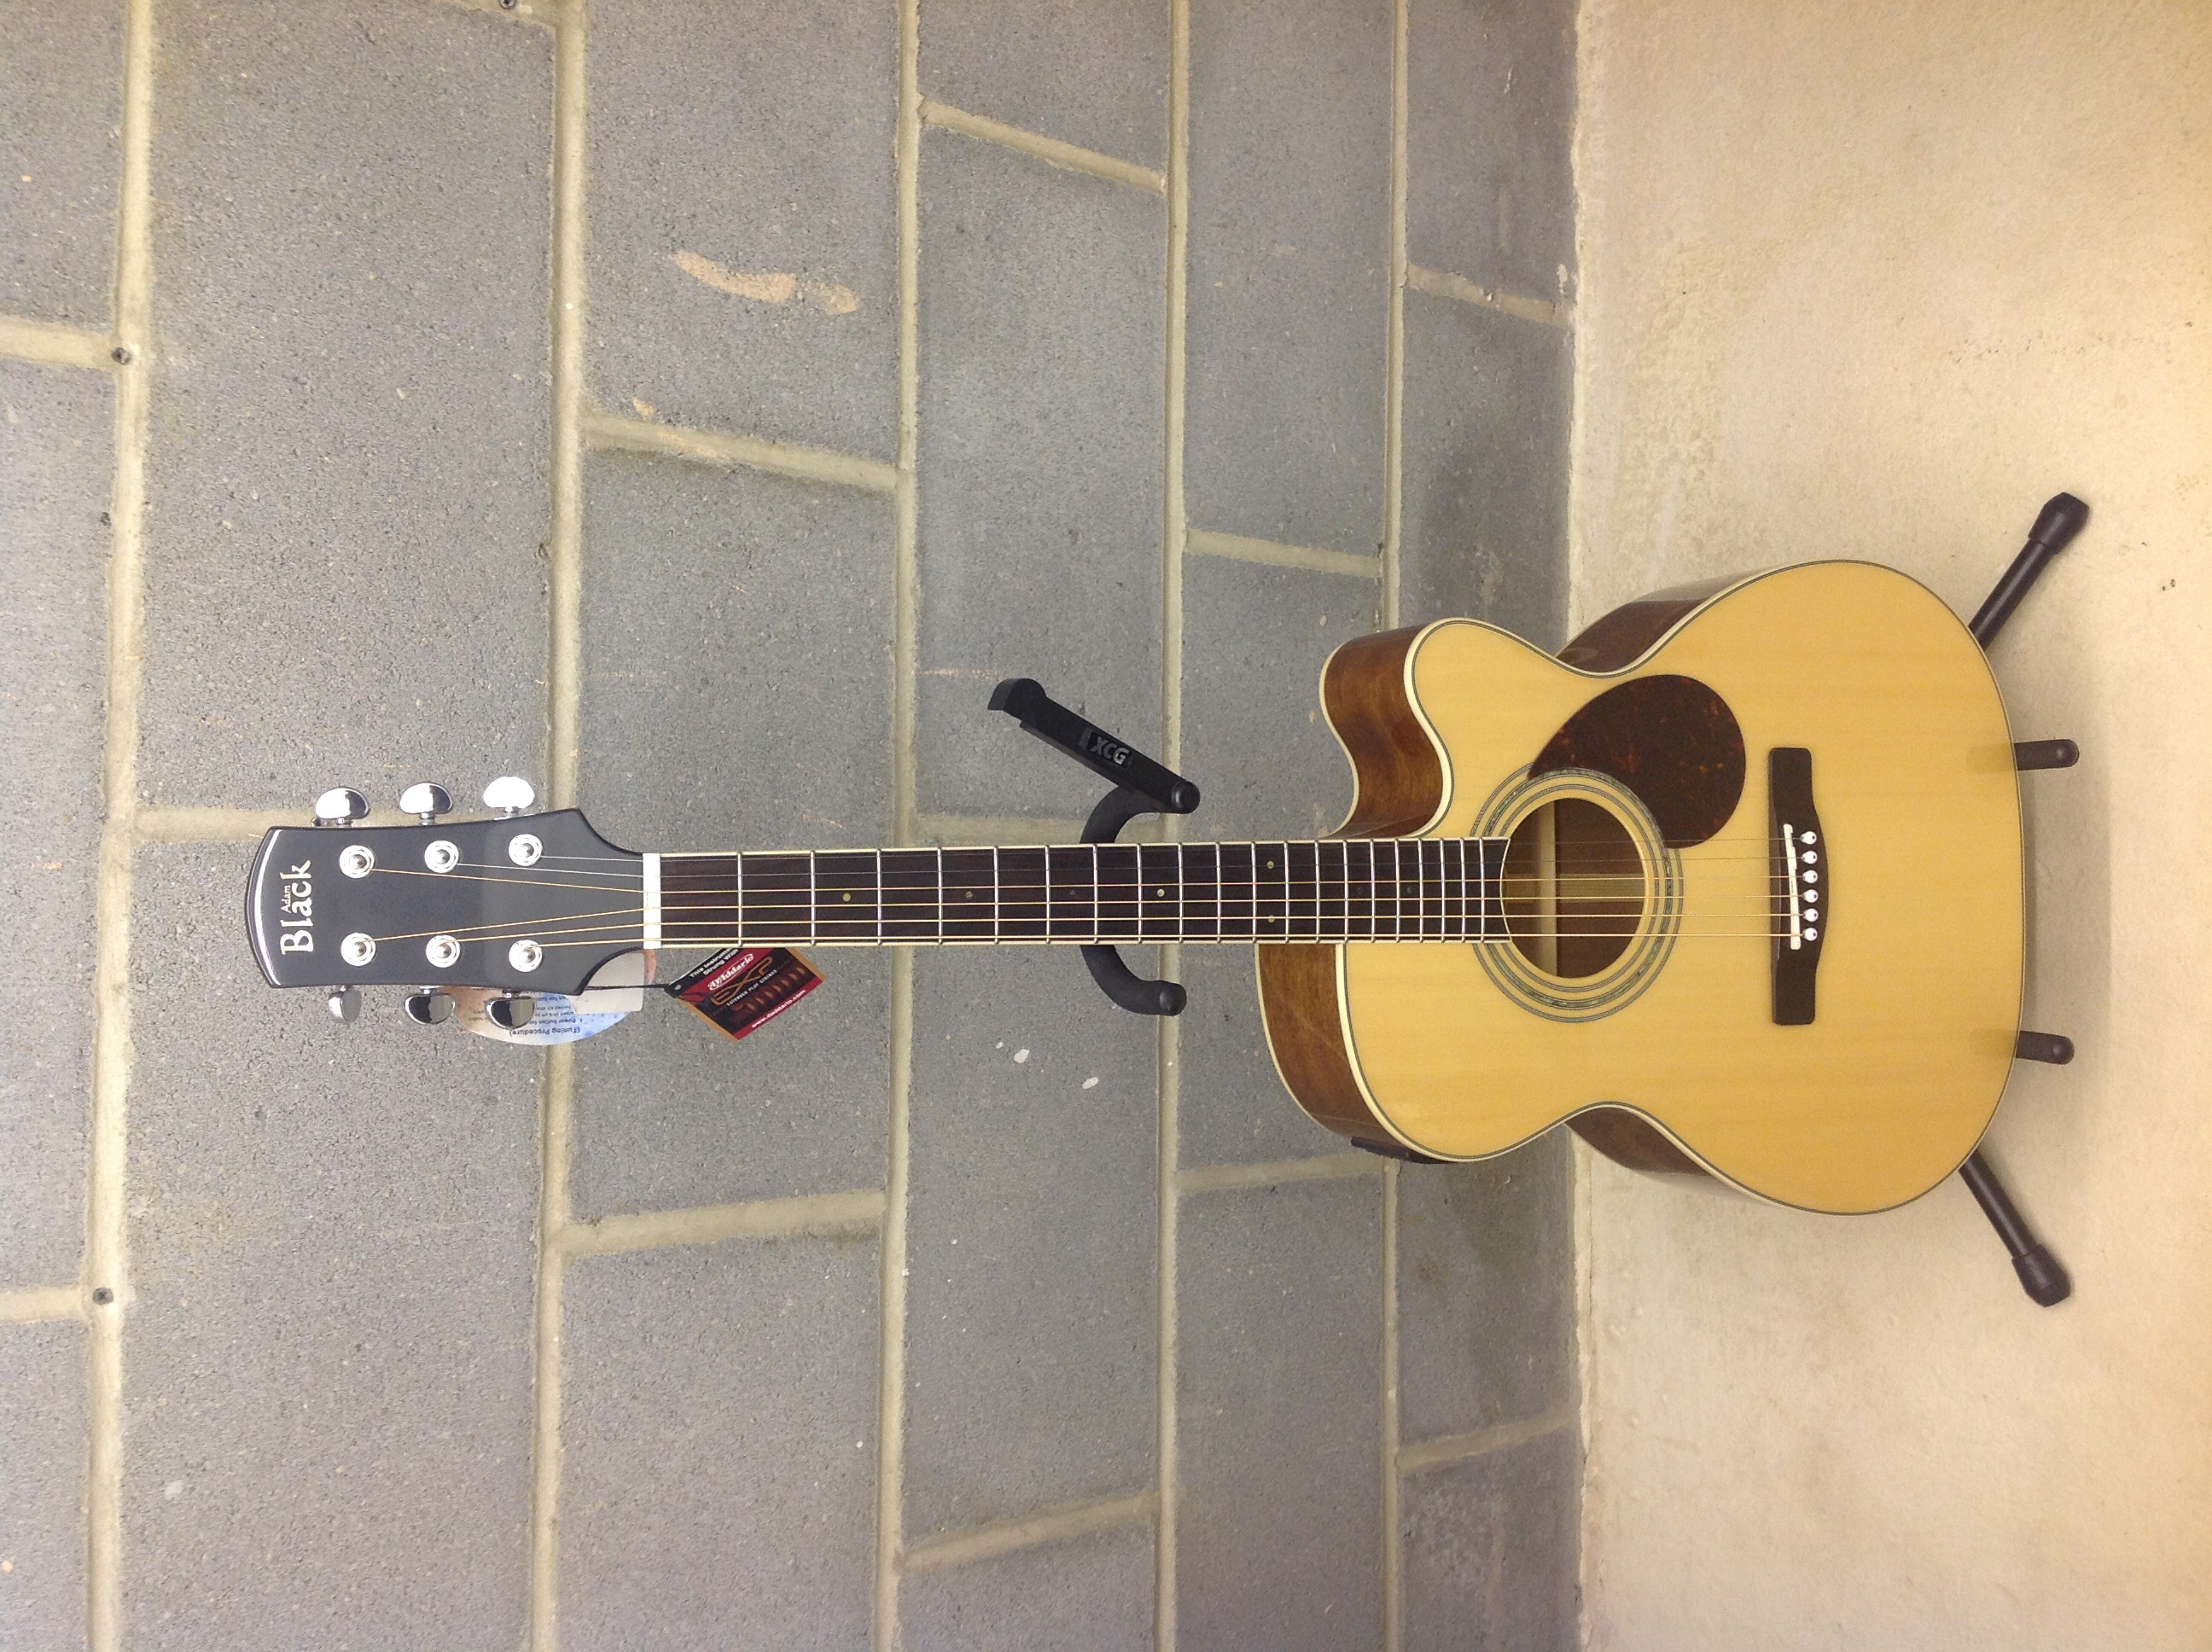 for sale adam black electric acoustic guitar buy and sell items in dinnington dinnington. Black Bedroom Furniture Sets. Home Design Ideas